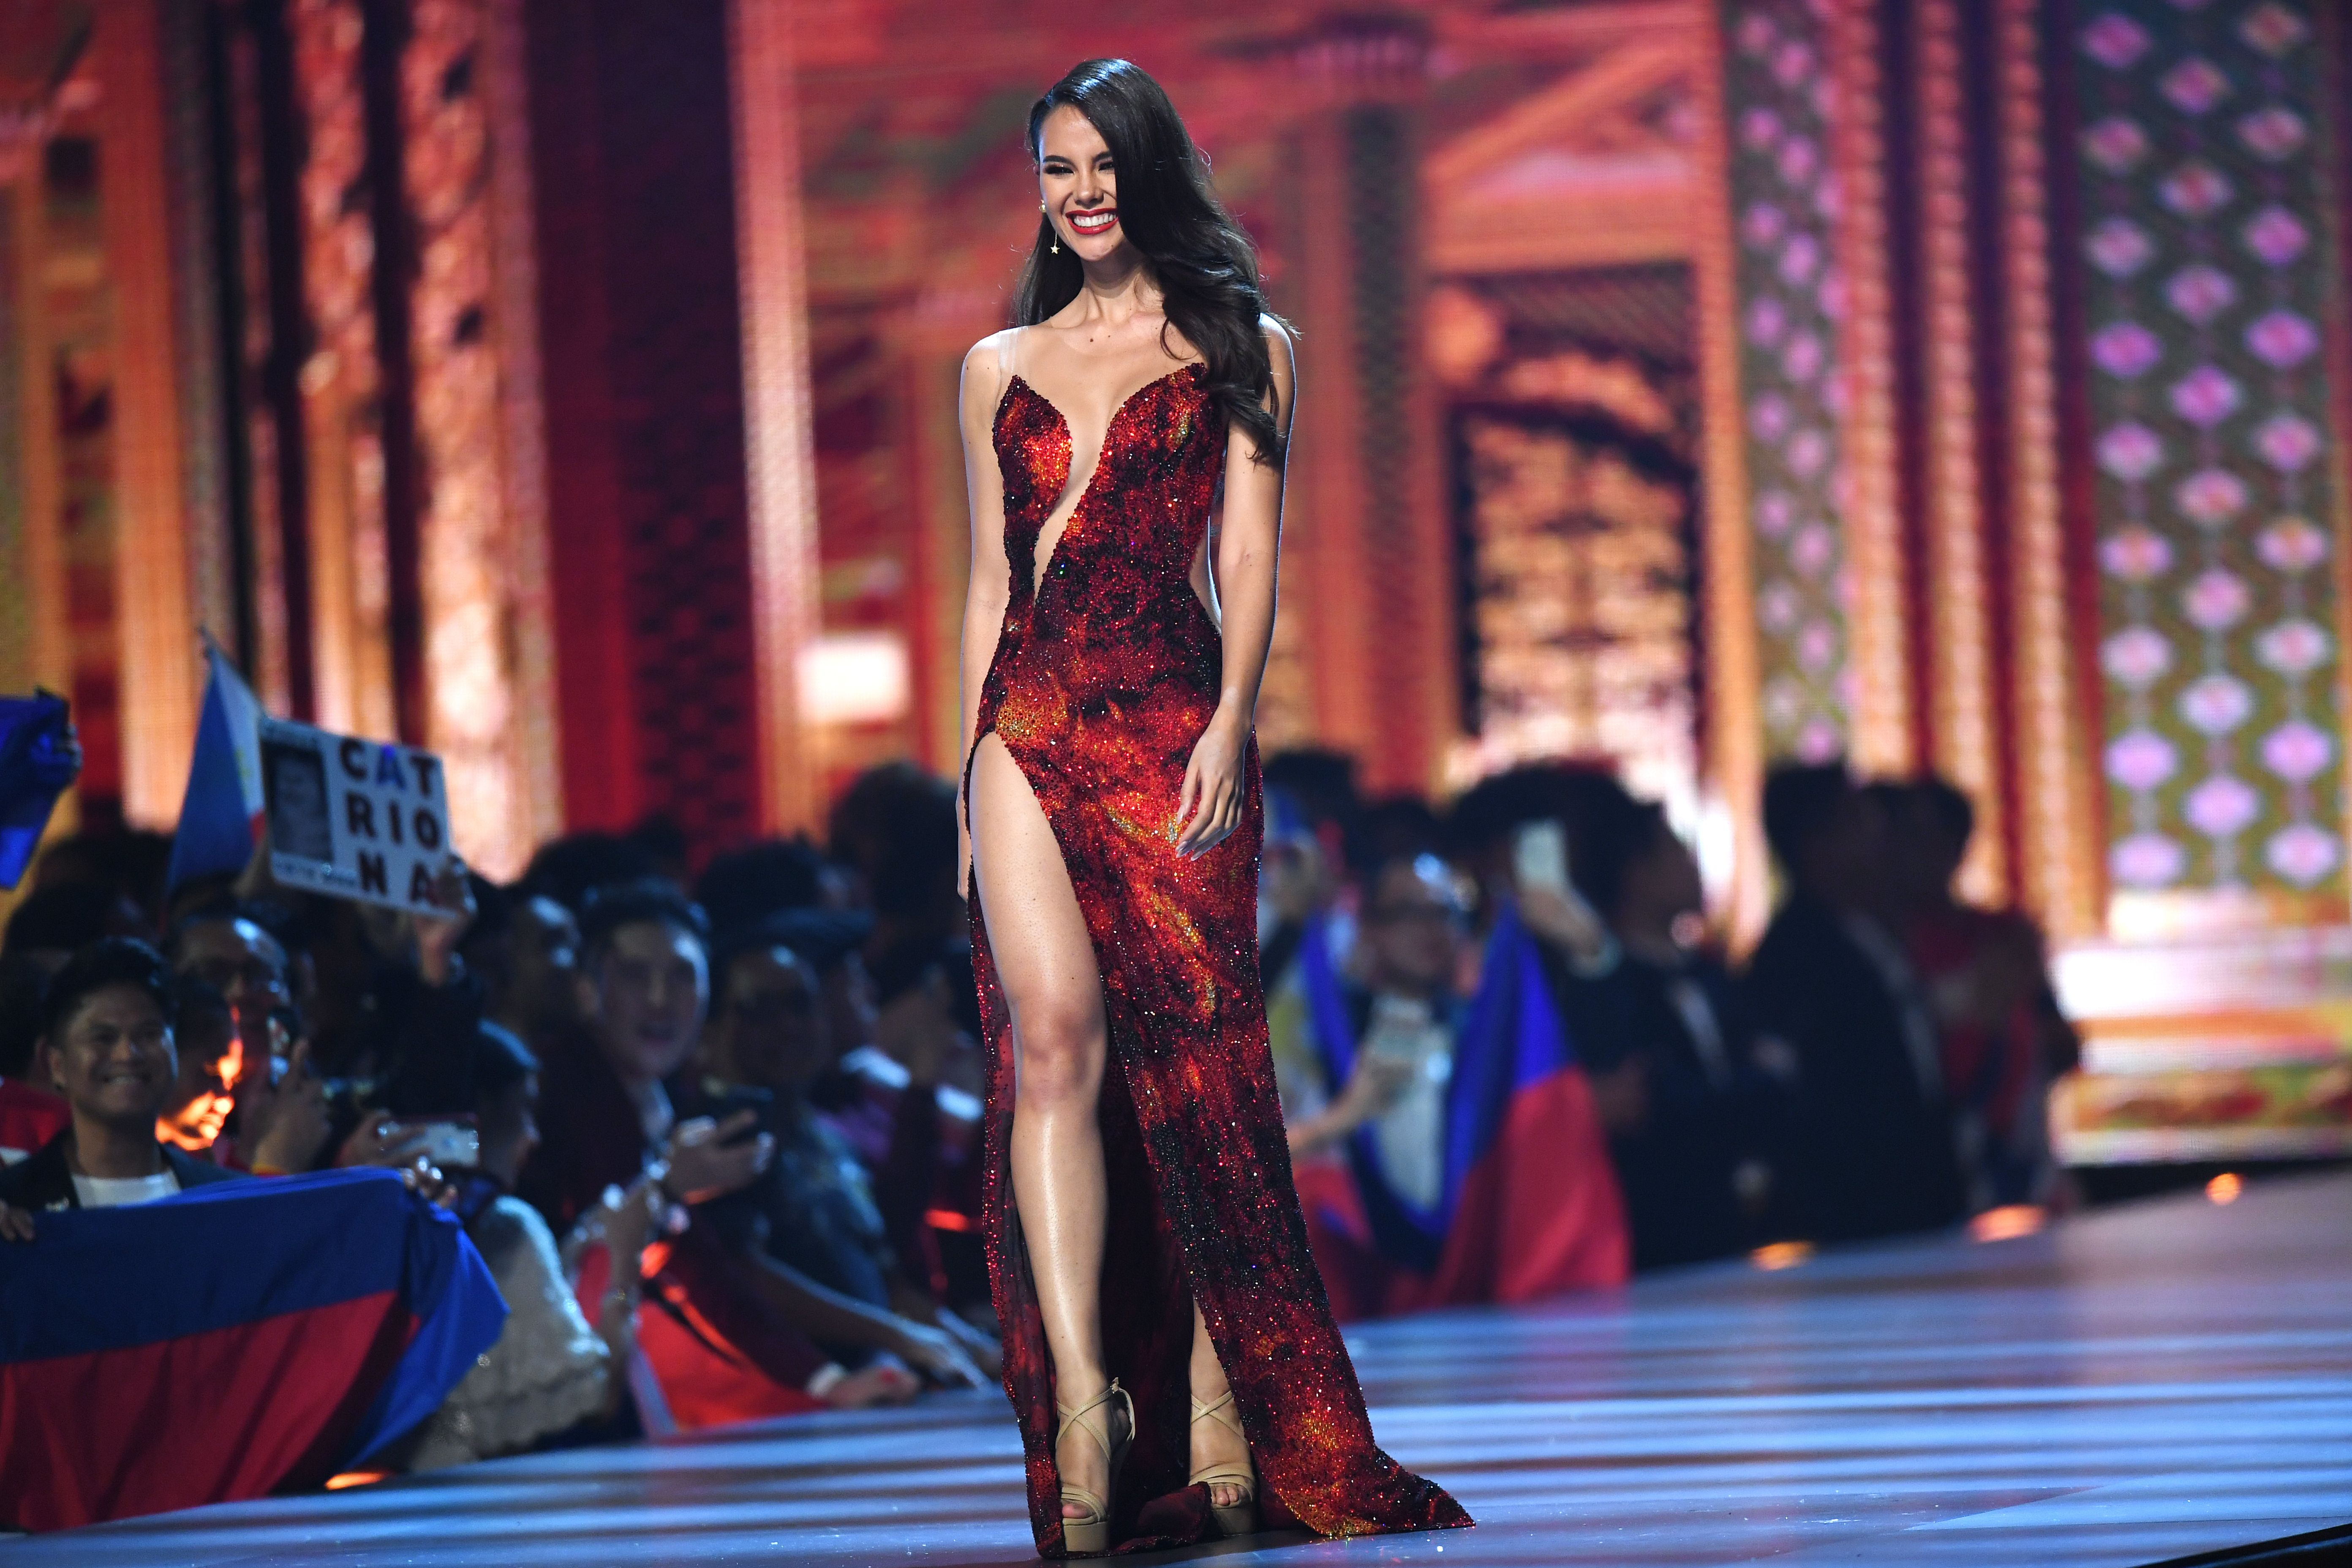 Catriona Gray of the Philippines competes after being selected as top 10 finalist during the 2018 Miss Universe Pageant in Bangkok on December 17, 2018. - Miss Philippines was crowned Miss Universe on December 17 in Bangkok after a trailblazing ceremony praised for featuring its first transgender candidate but marred by gaffes about the English-speaking ability of two Asian contestants. (Photo by Lillian SUWANRUMPHA / AFP)        (Photo credit should read LILLIAN SUWANRUMPHA/AFP/Getty Images)